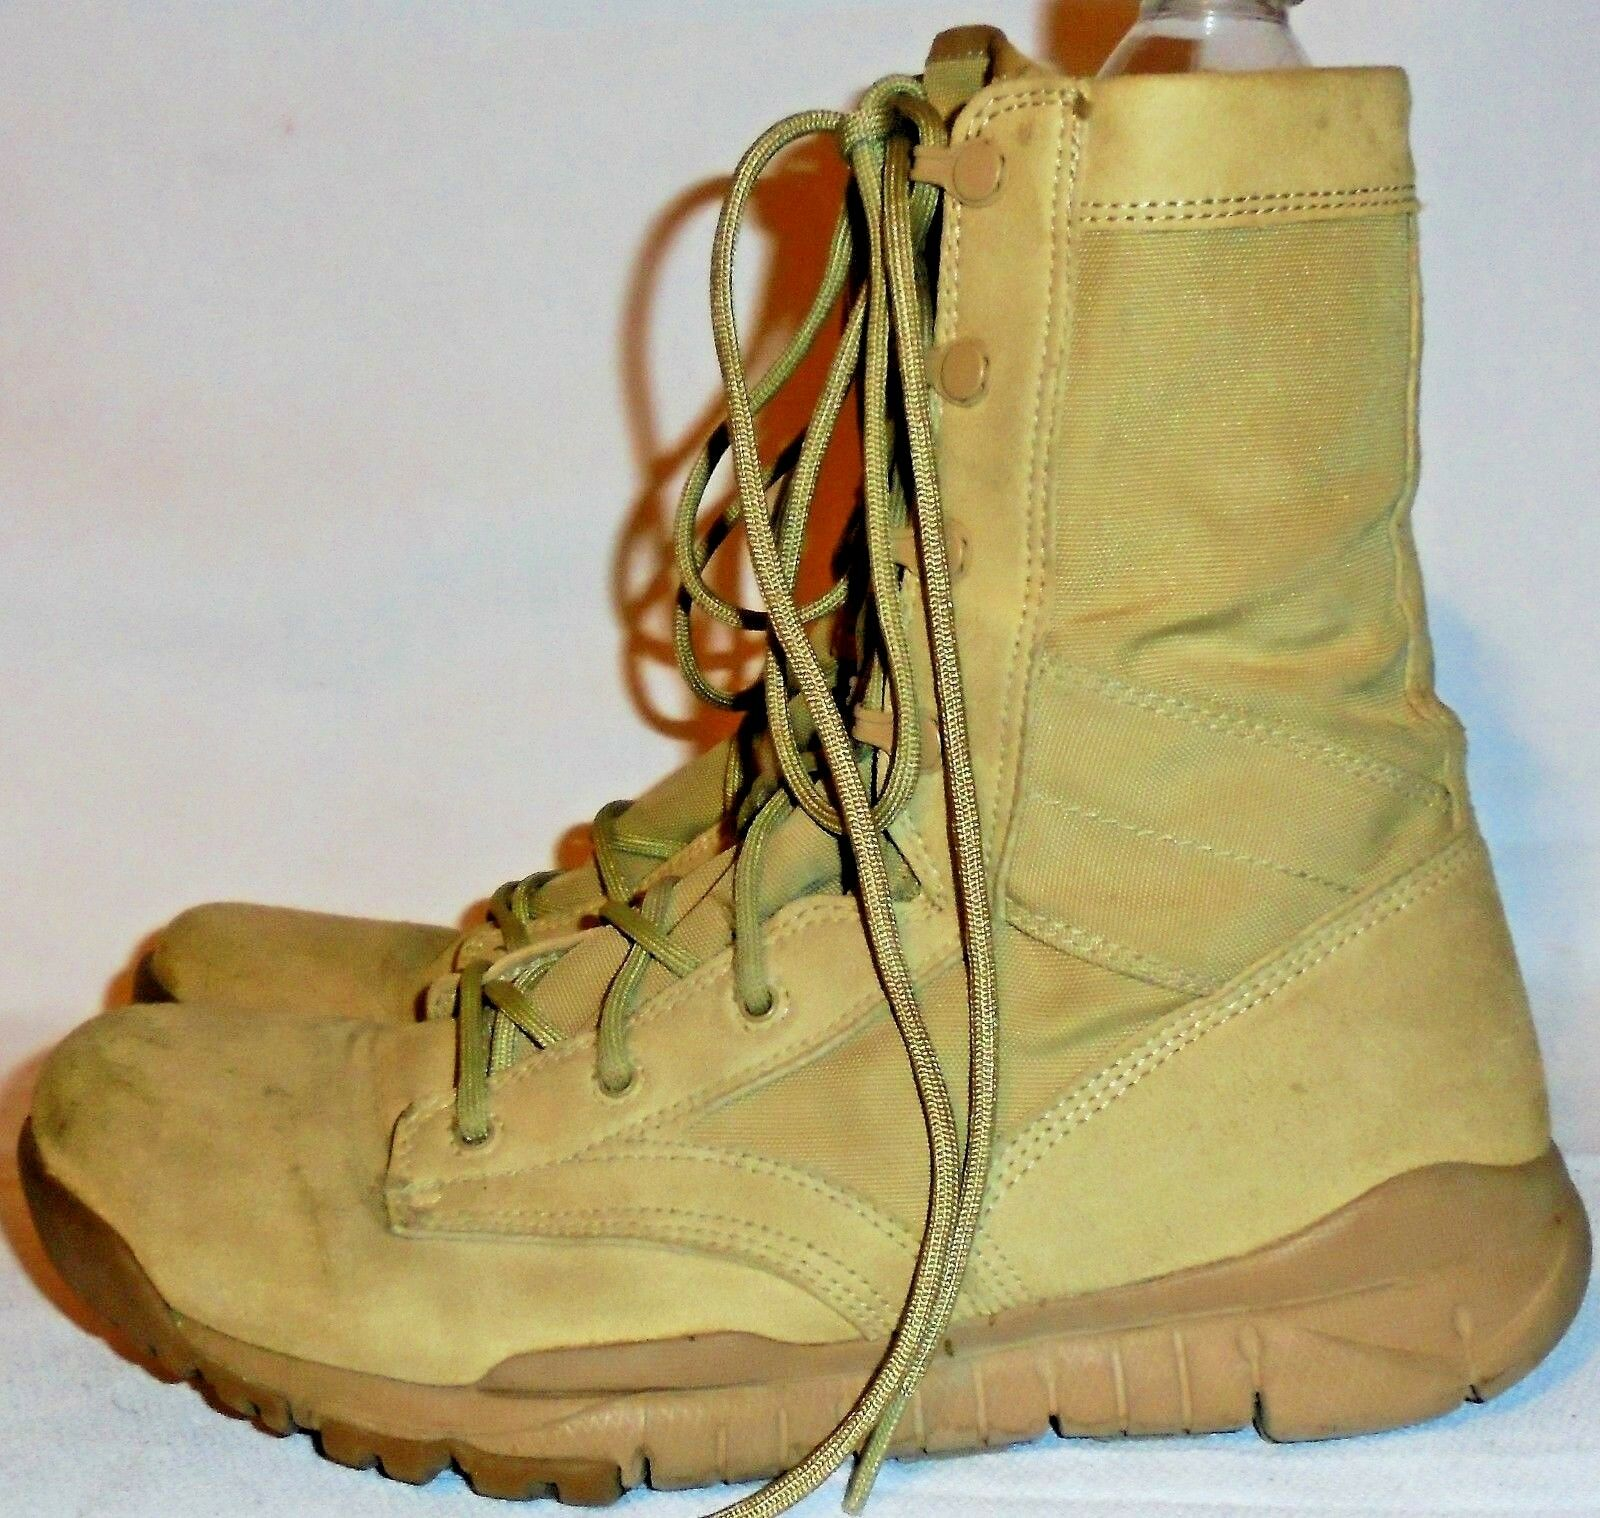 NIKE, BROWN SUED FABRIC MILITARY STYLE LACE UP BOOT, SIZE 7 1/2 M, 11 1/2 IN. LO